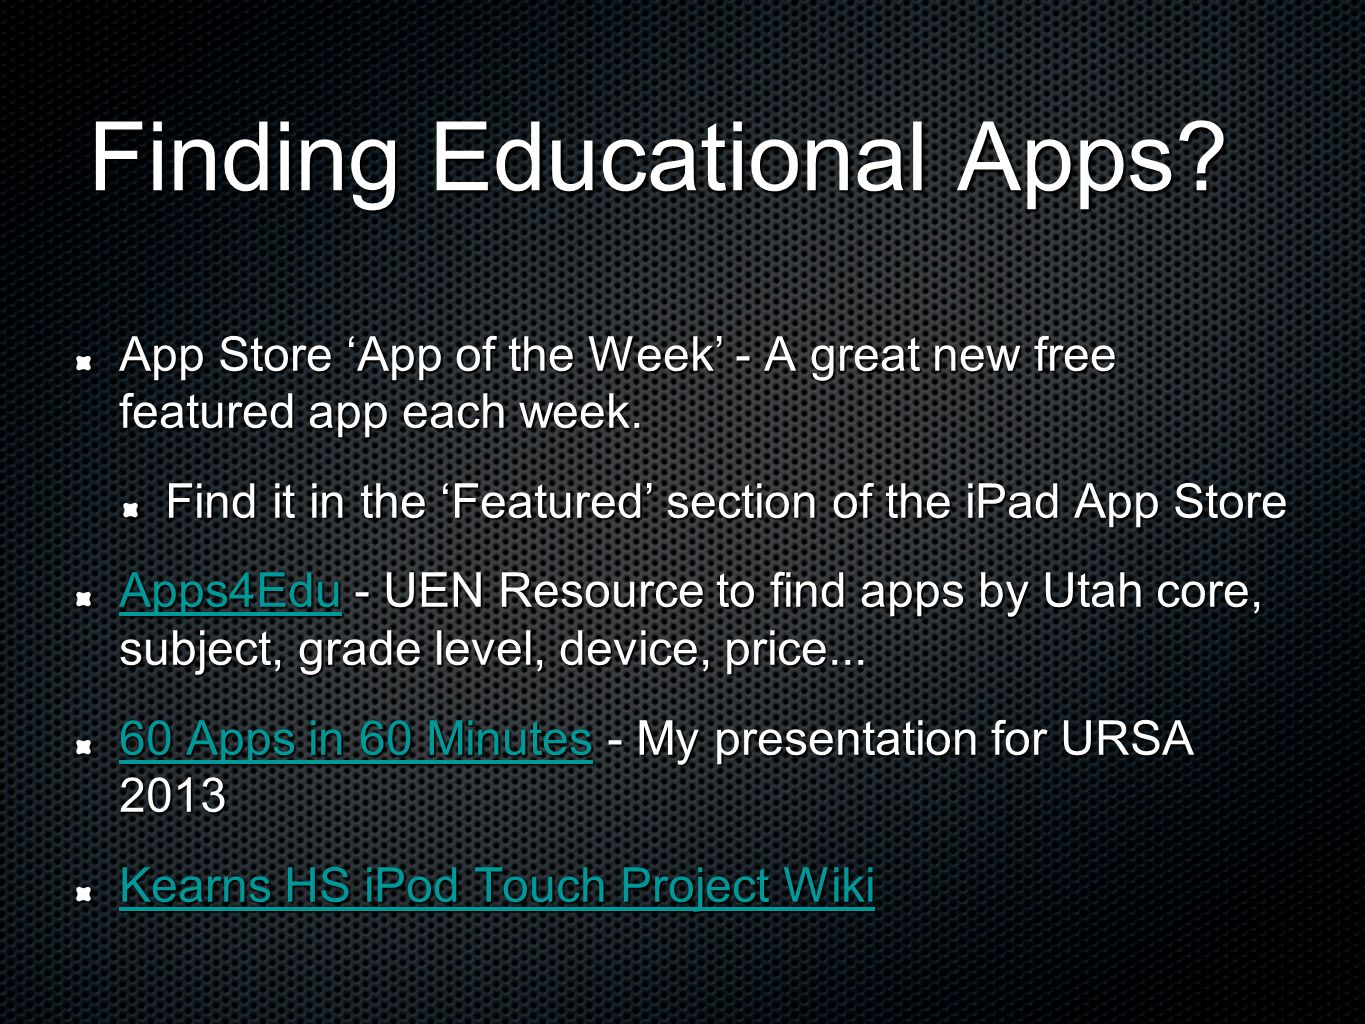 Finding Educational Apps? App Store App of the Week - A great new free featured app each week. Find it in the Featured section of the iPad App Store A